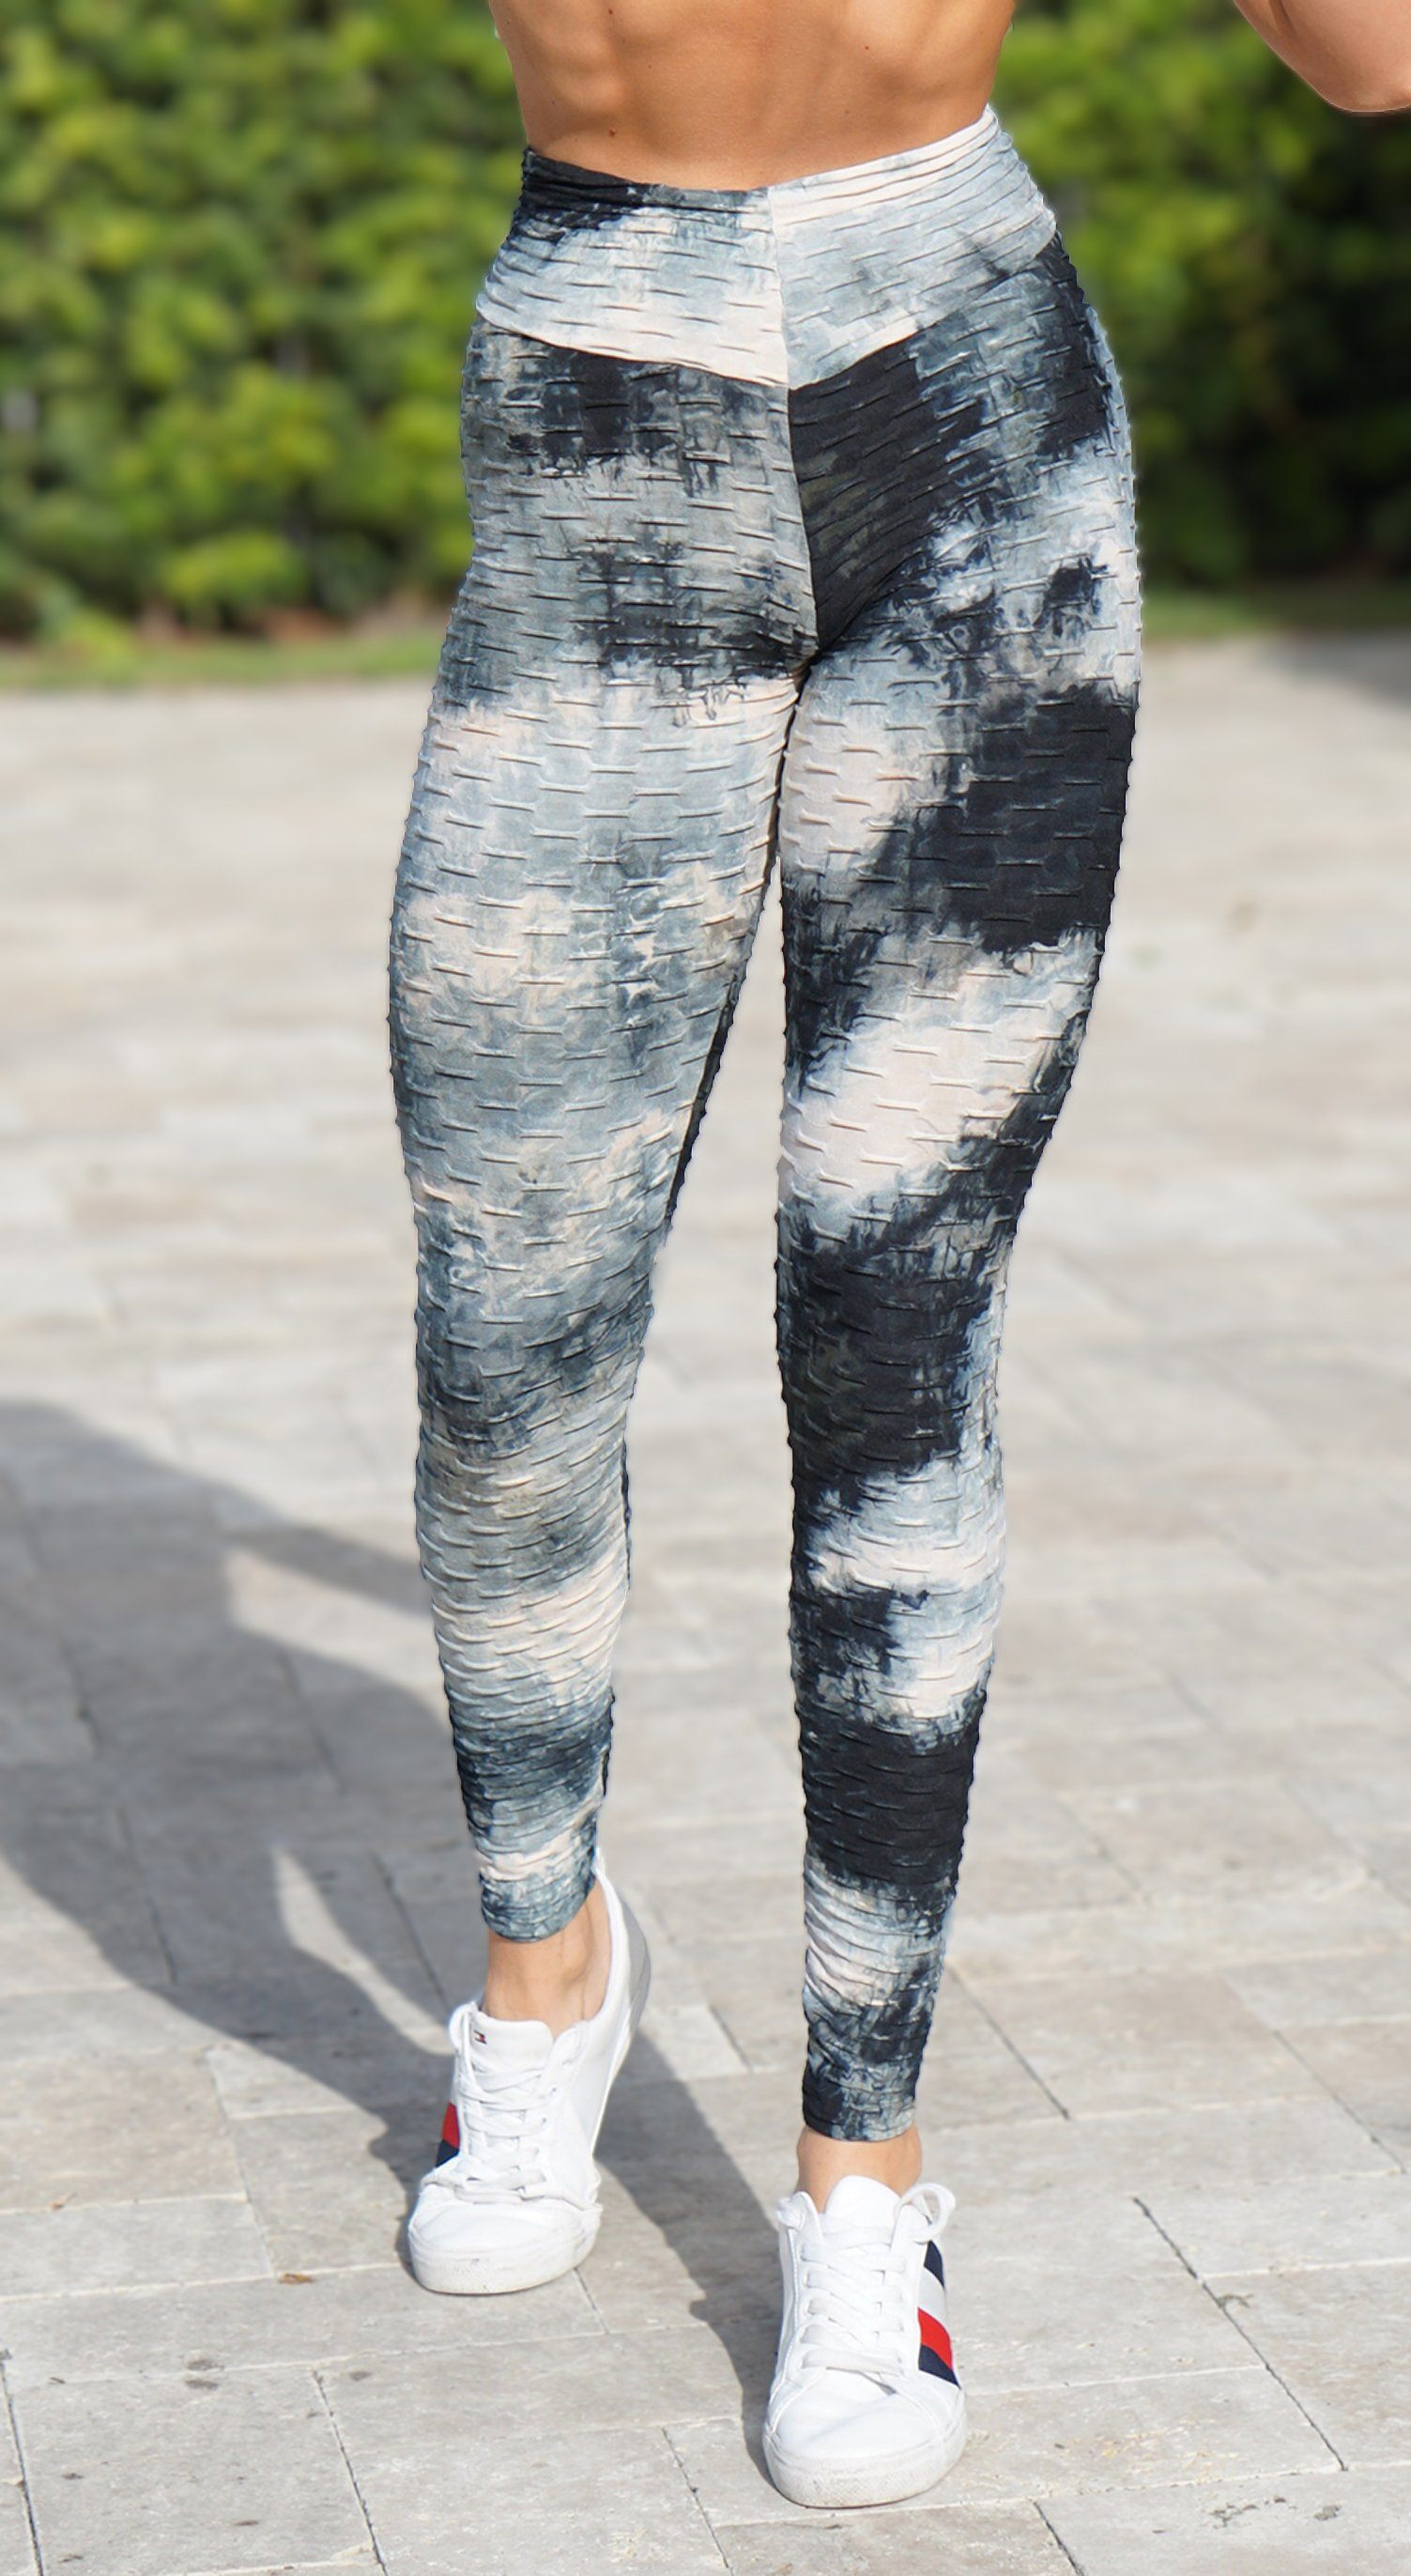 Brazilian Legging - High Waist Anti Cellulite Textured Scrunch Booty Tie Dye Black & Grey